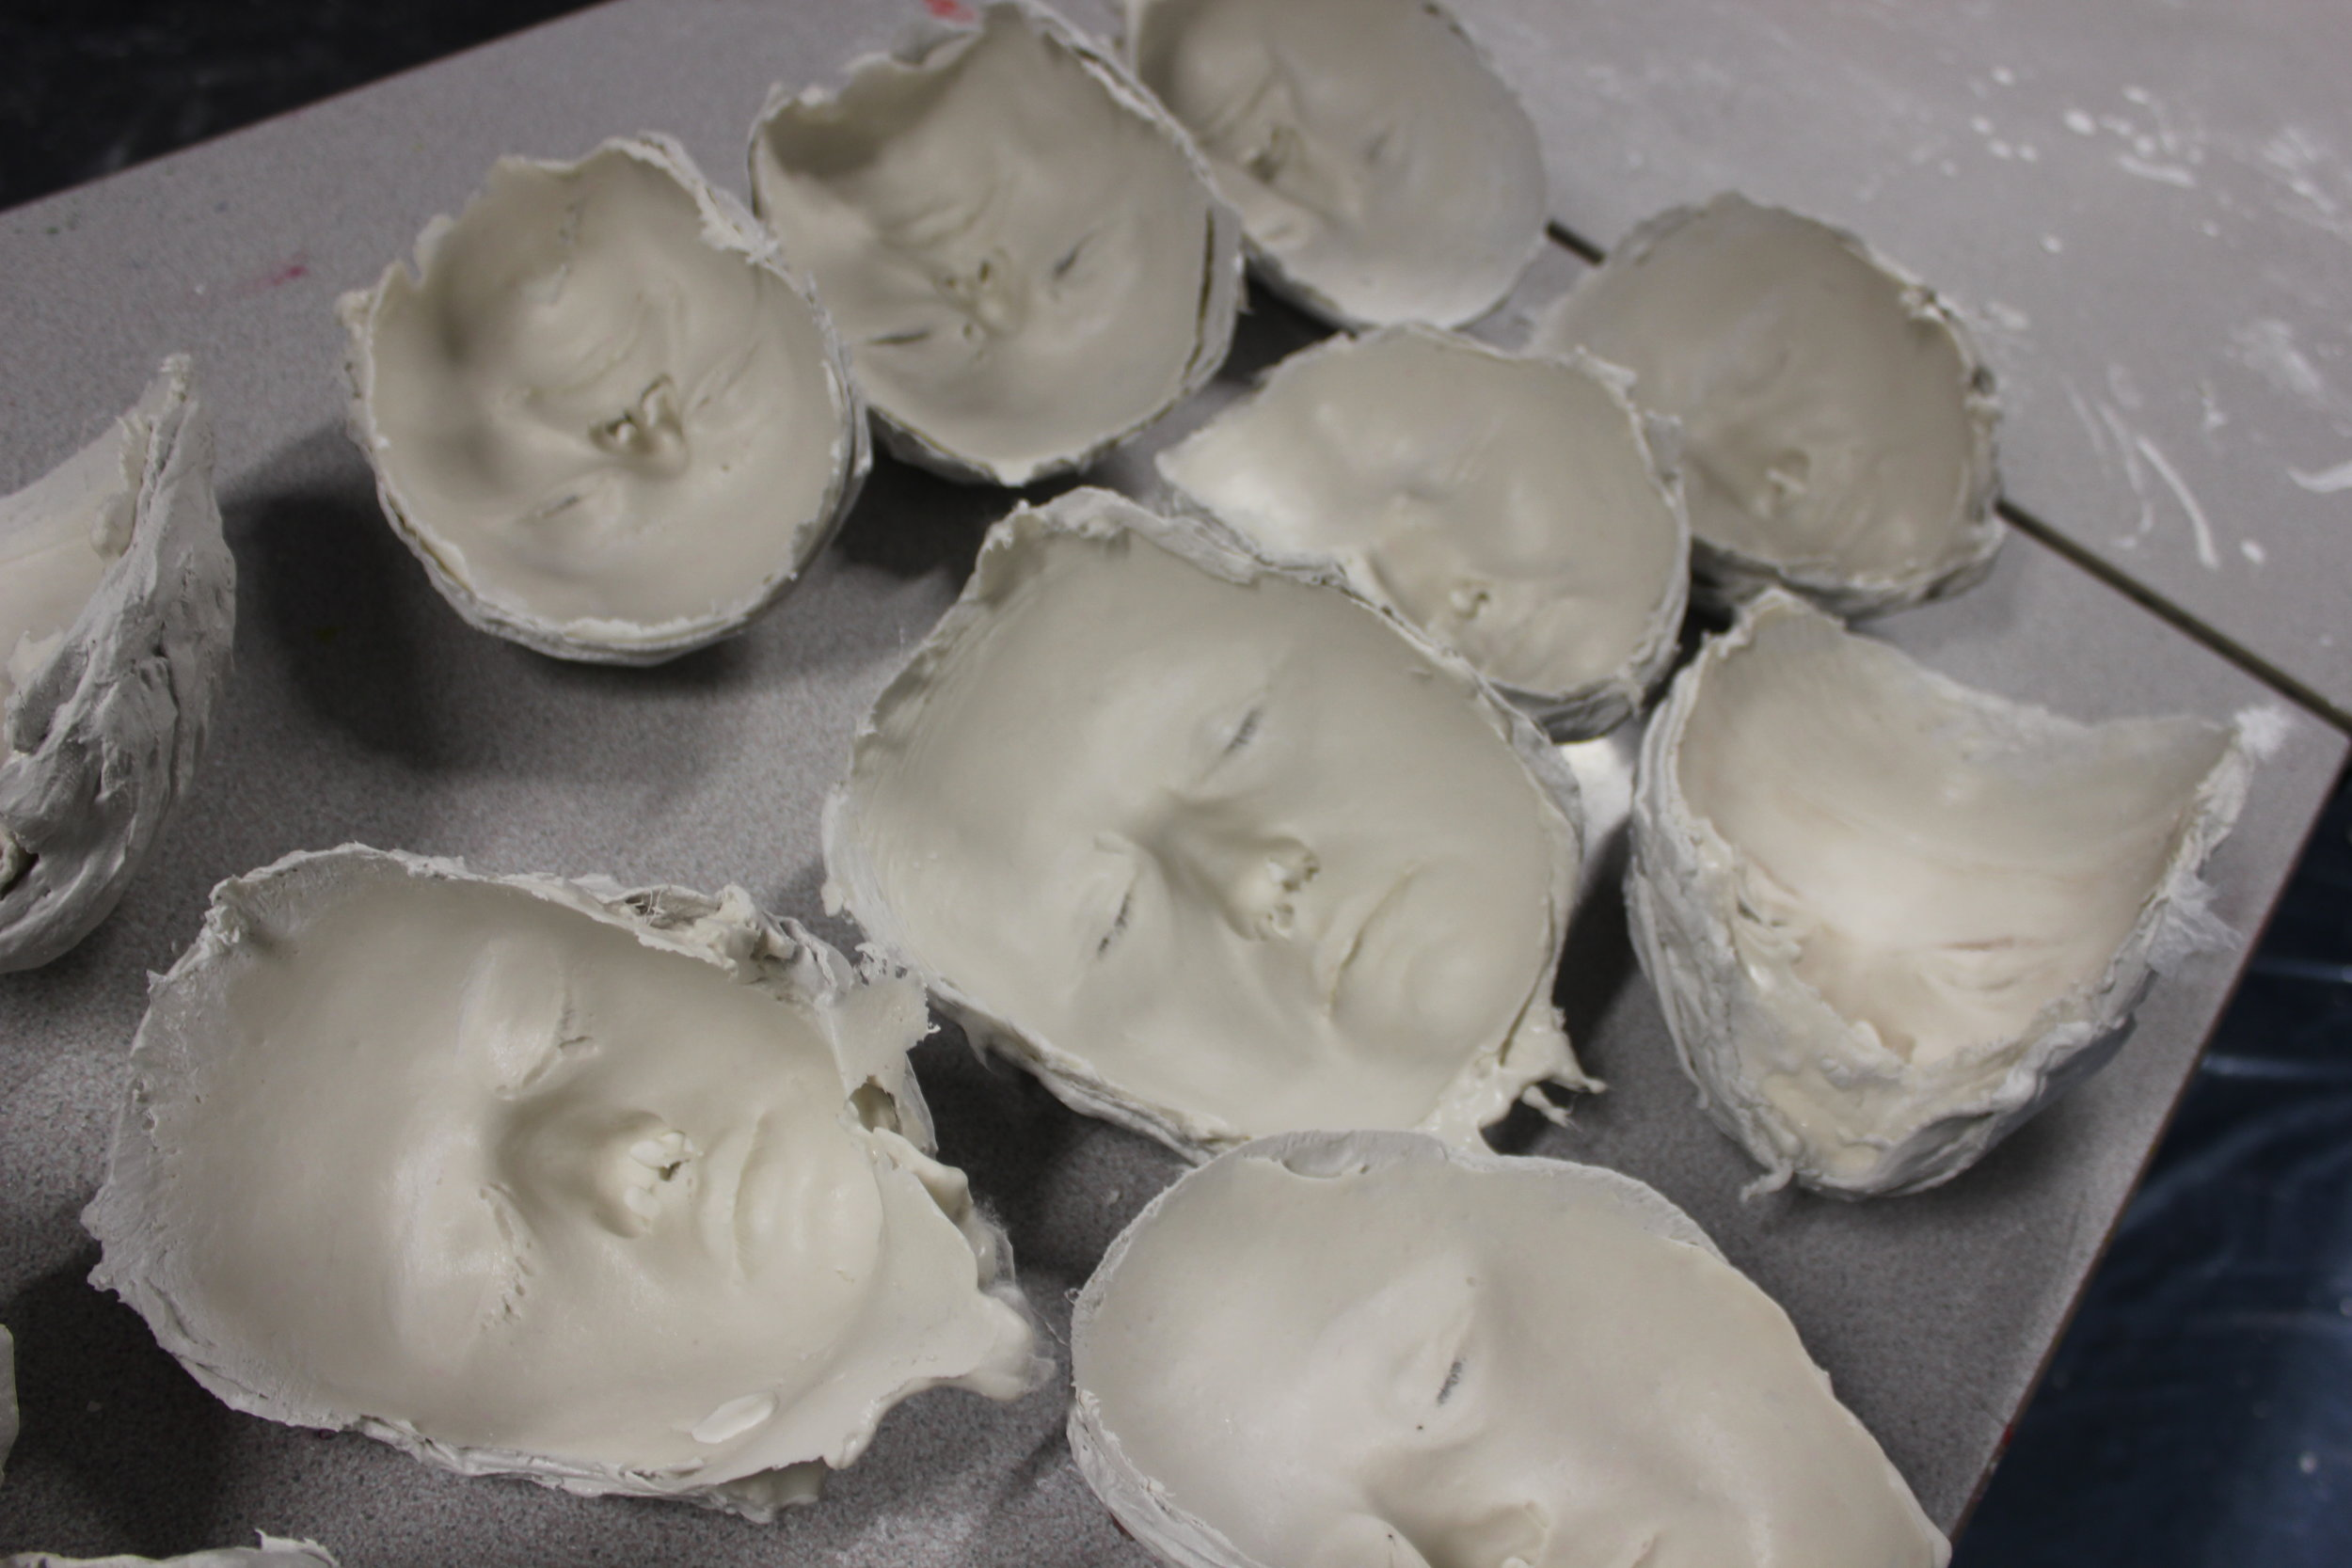 Multiple moulds waiting to be filled with plaster, from group face casting workshop at Invicta Grammar School for Girls, Kent.